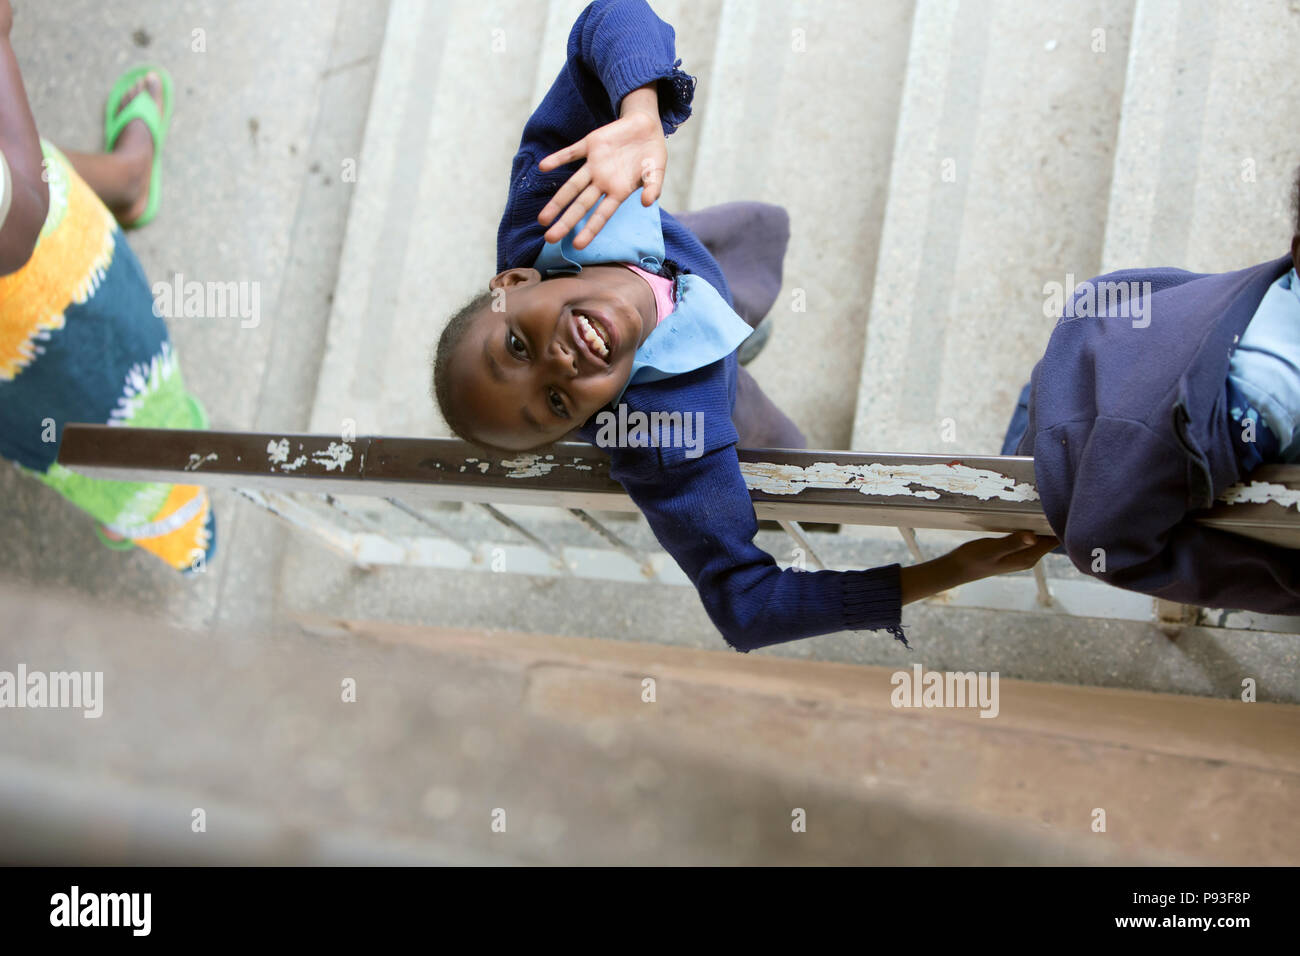 Nairobi, Kenya - School uniform student stands in the stairwell of St. John's Community Center Pumwani looking at the viewer. - Stock Image